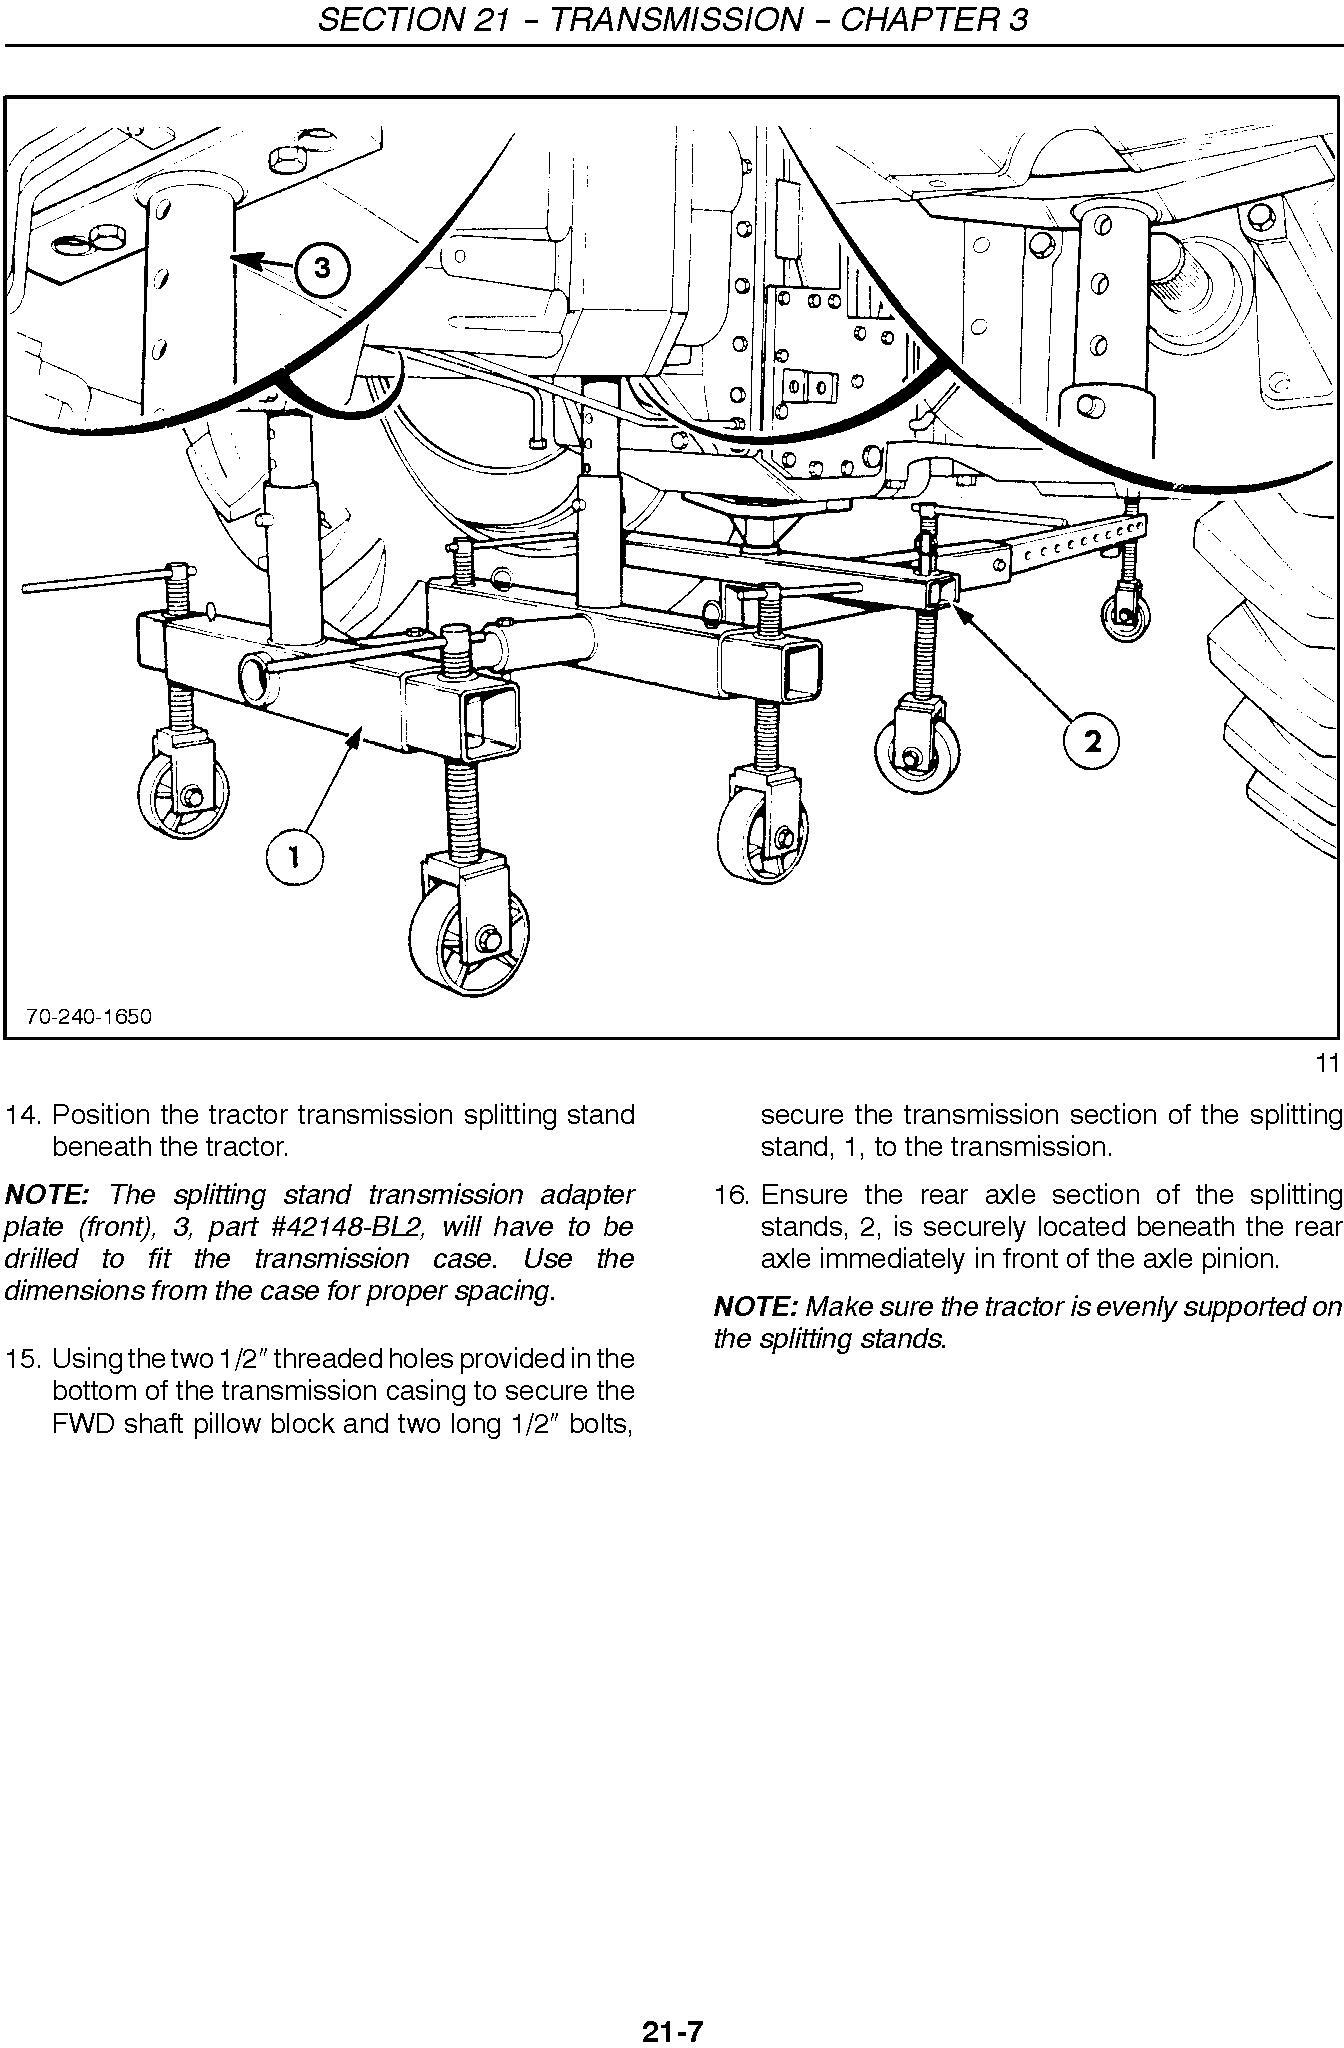 New Holland 8670, 8770, 8870, 8970, 8670A, 8770A, 8870A, 8970A Tractor Service Manual - 1